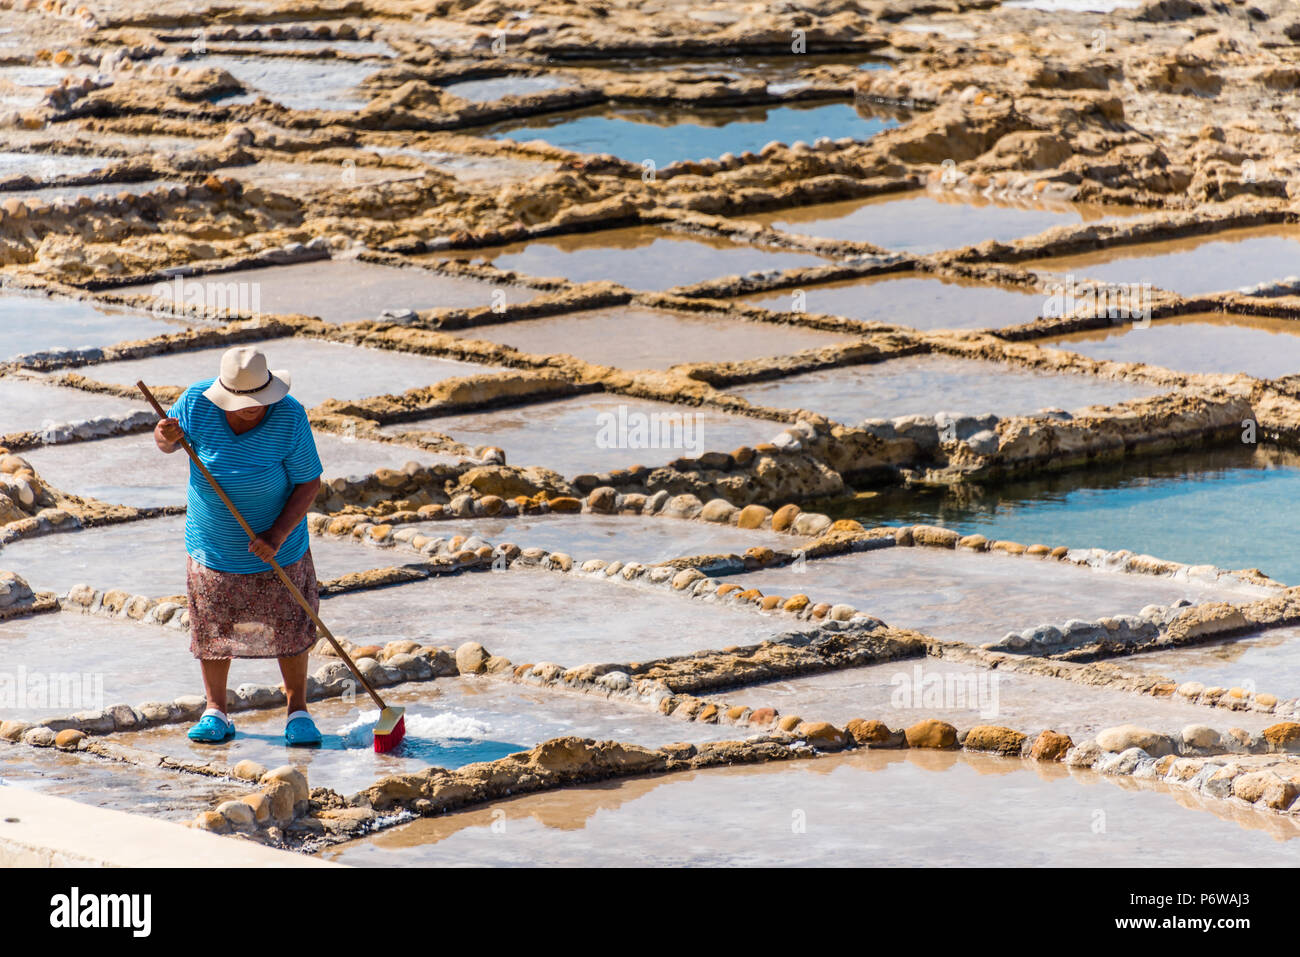 Harvesting sea salt from the ancient salt pans in Marsalforn, Gozo, Malta. - Stock Image